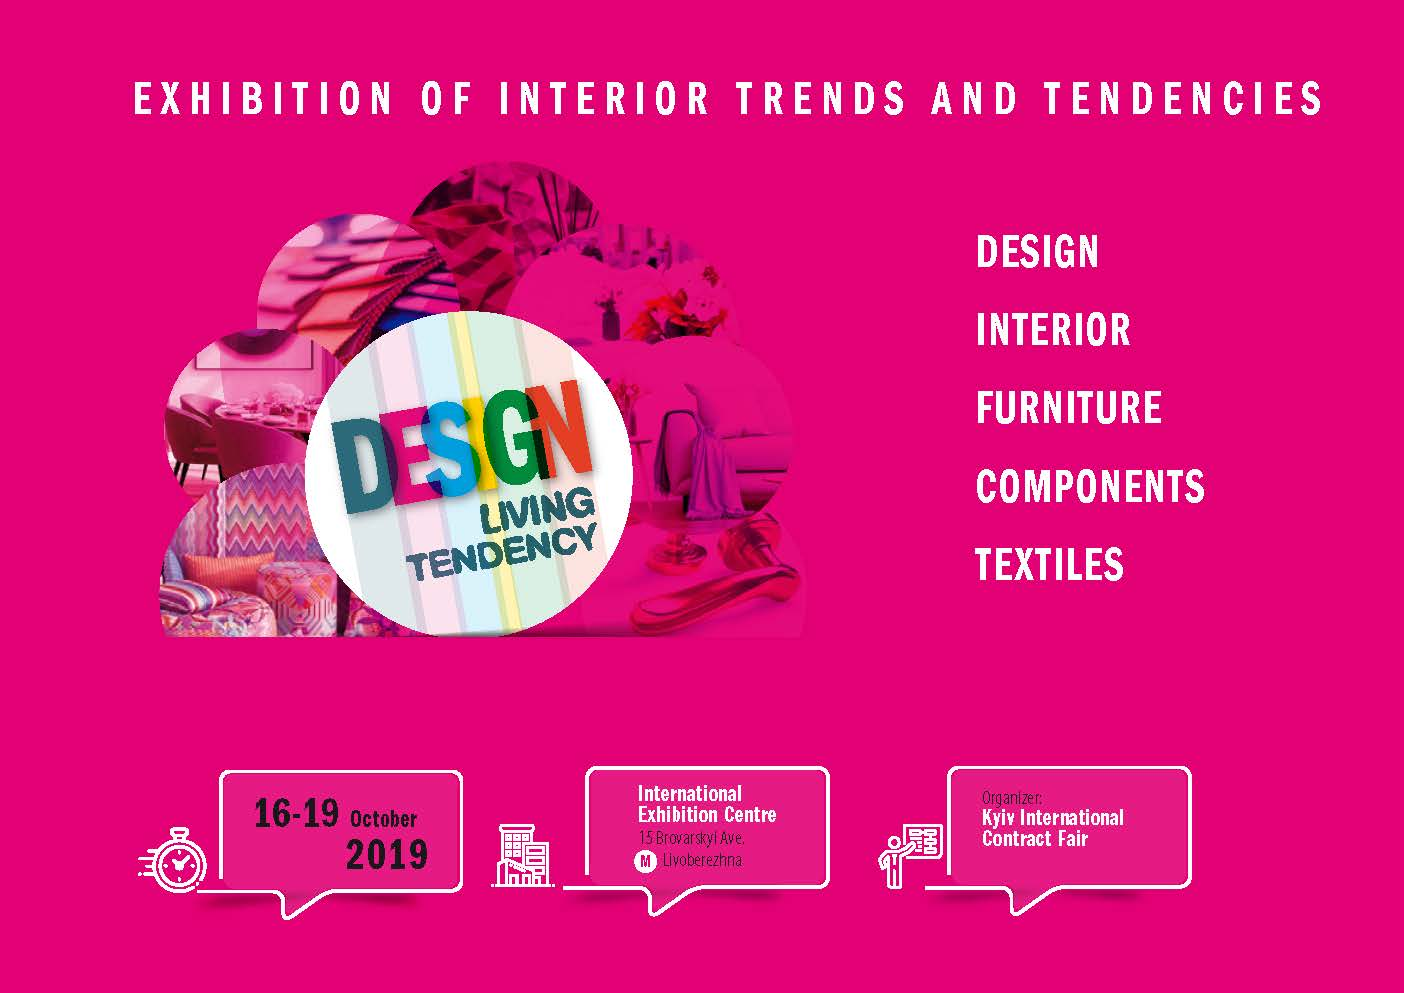 infografic engl 1 - Everything you need to know about Design Living Tendency 2019